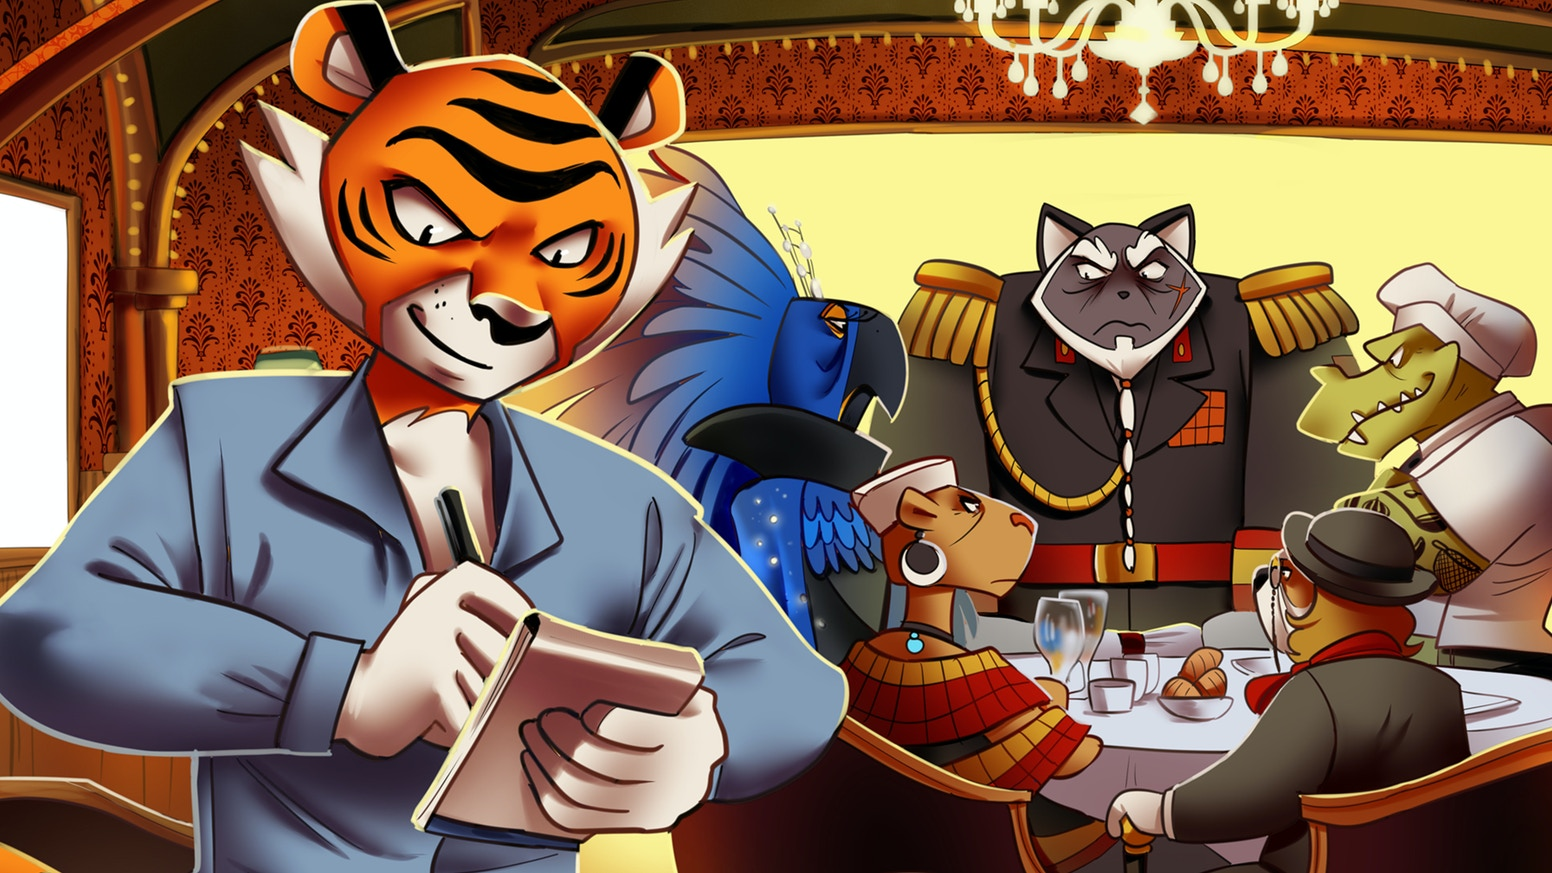 Part Robin Hood, part Ocean's Eleven, and beautifully illustrated, Hot Lunch is a dramatic heist story set in an anthropomorphic Japan.